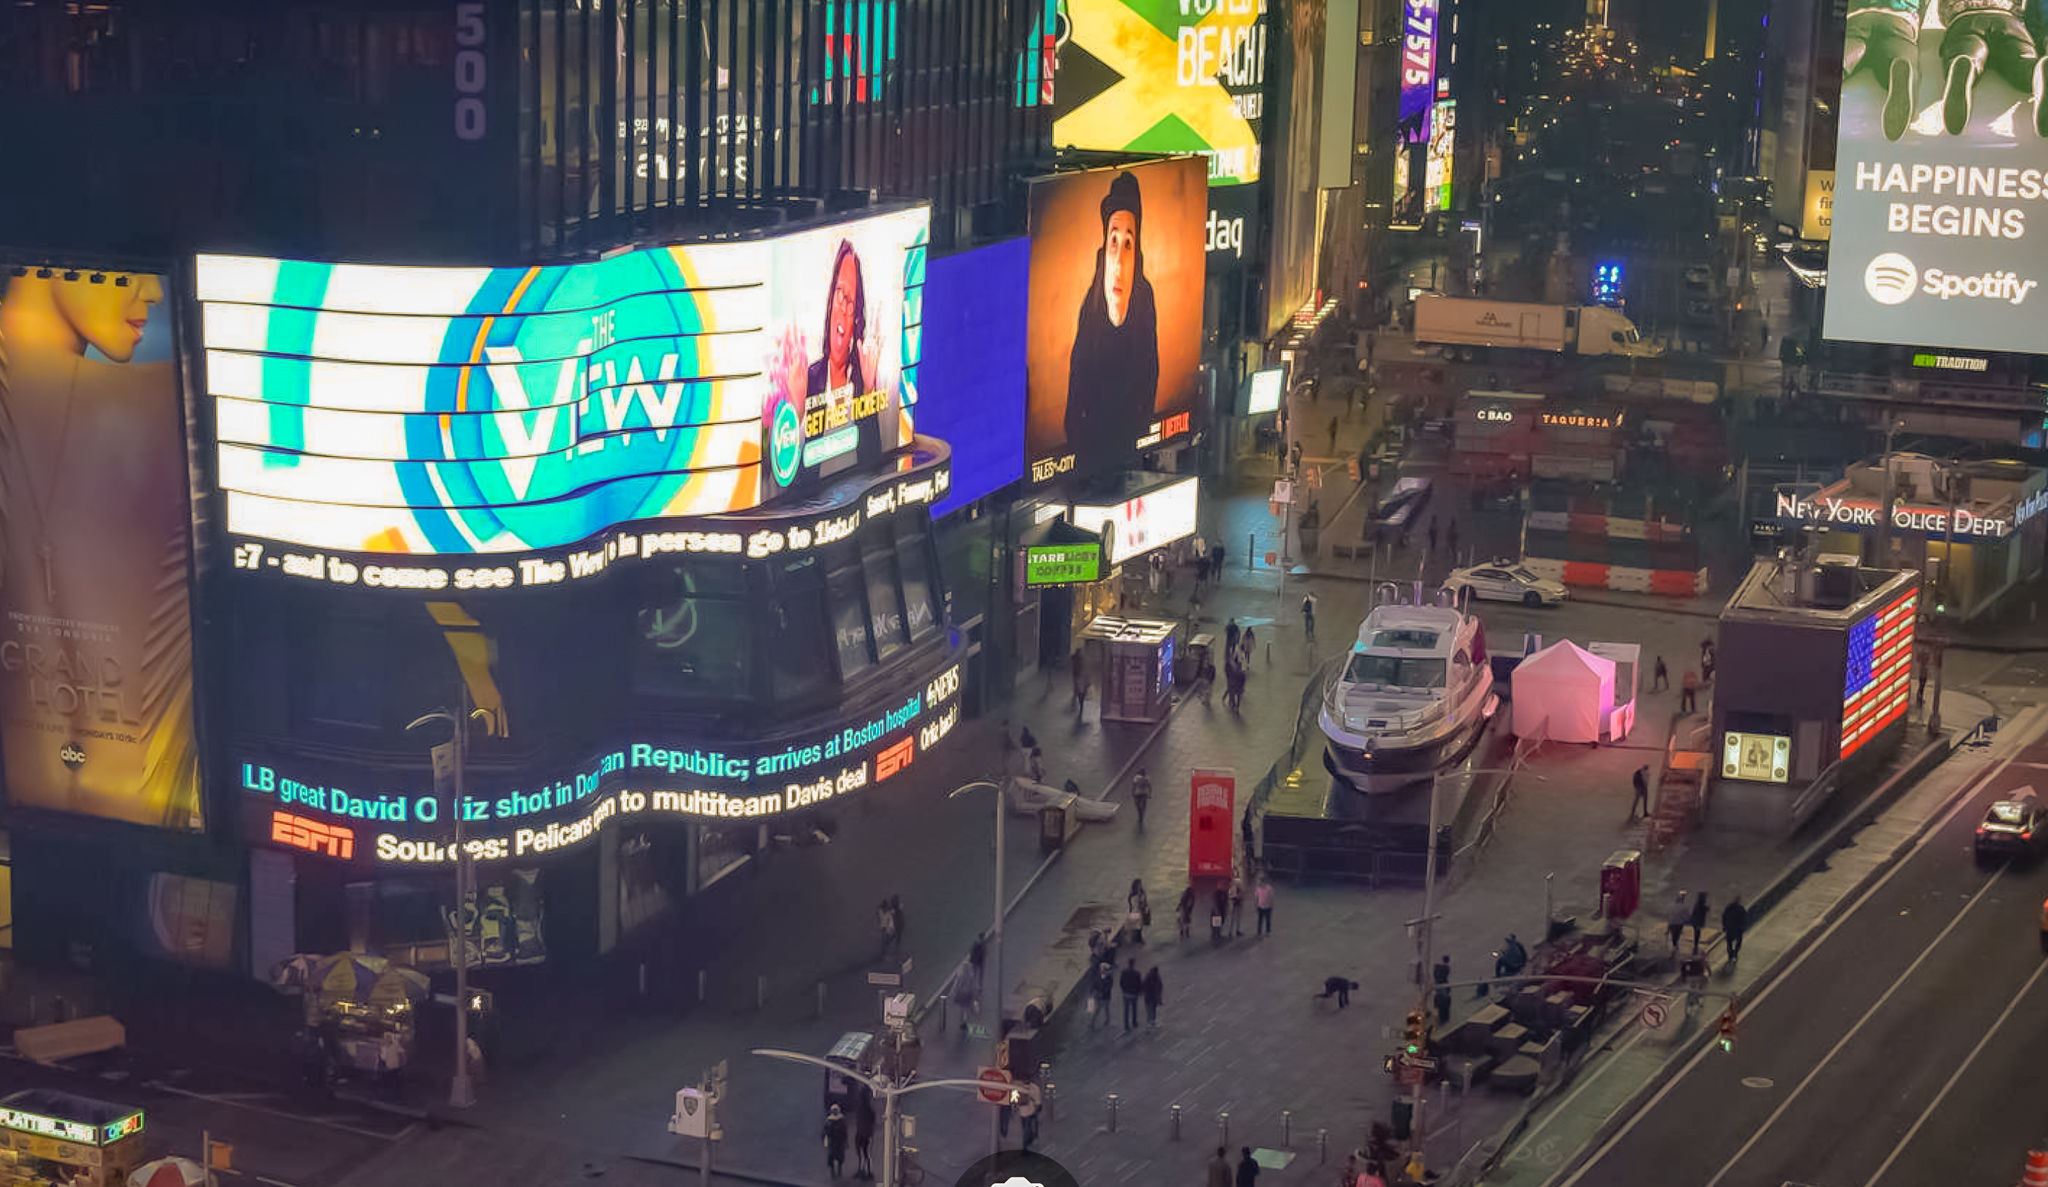 azimut yachts   aerial view of an azimut s6 yacht landed in times square, new york city